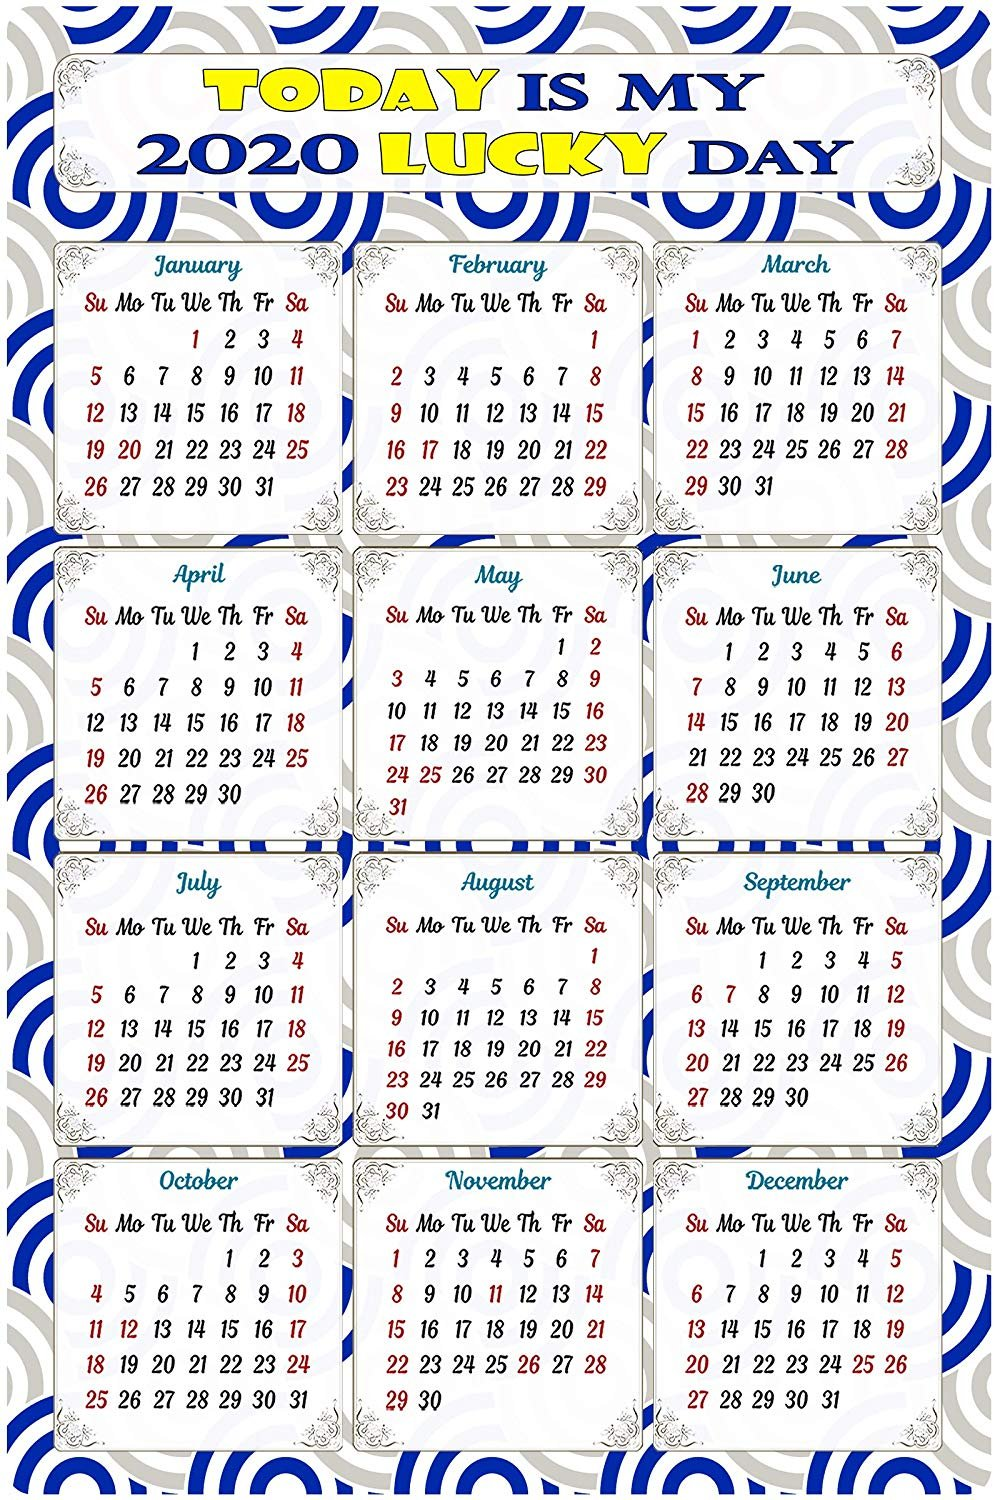 2020 Magnetic Calendar - Calendar Magnets - Today is My Lucky Day - Edition #TN08